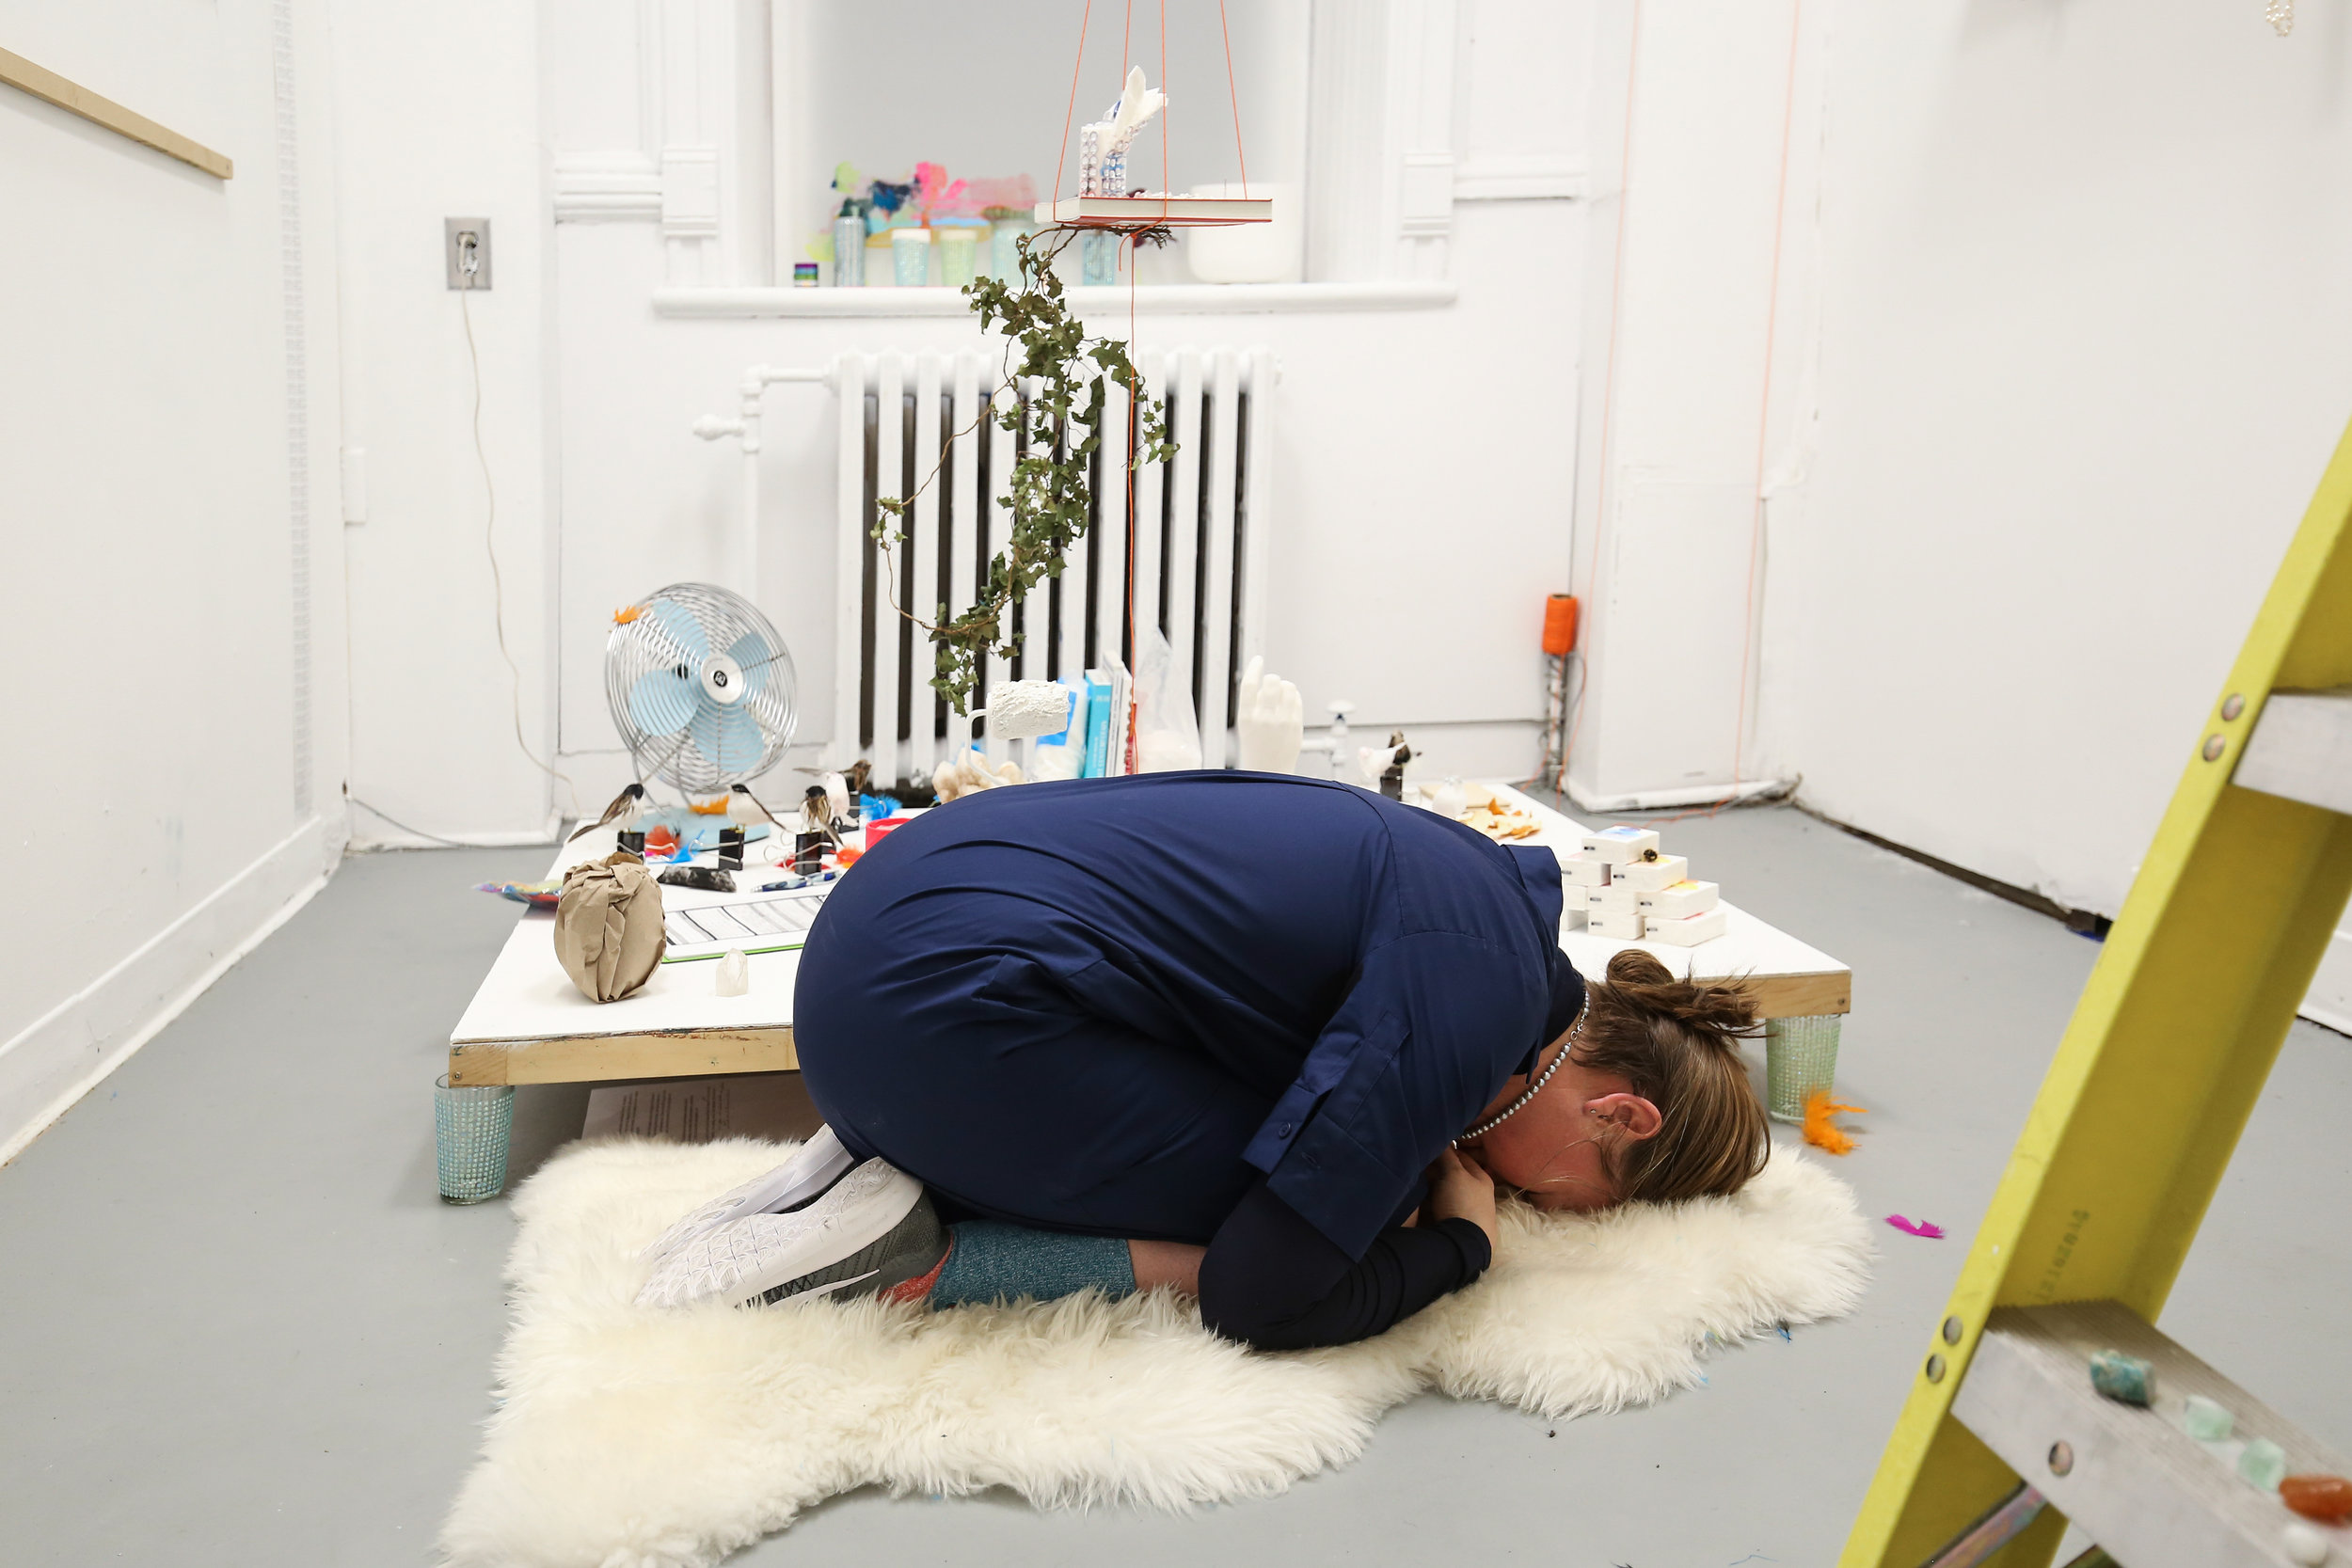 Installation and performance, 2018